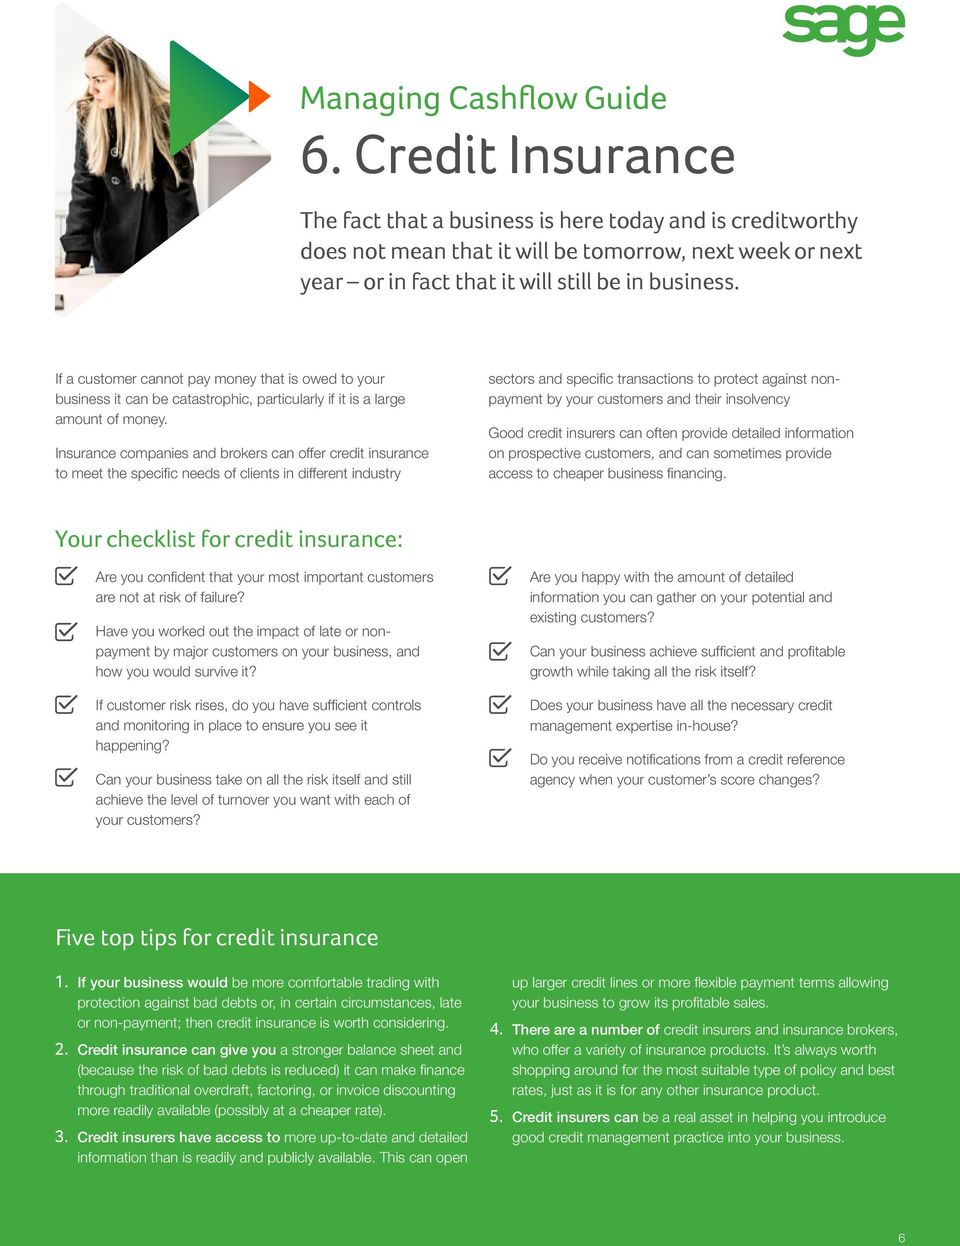 Insurance companies and brokers can offer credit insurance to meet the specific needs of clients in different industry sectors and specific transactions to protect against nonpayment by your